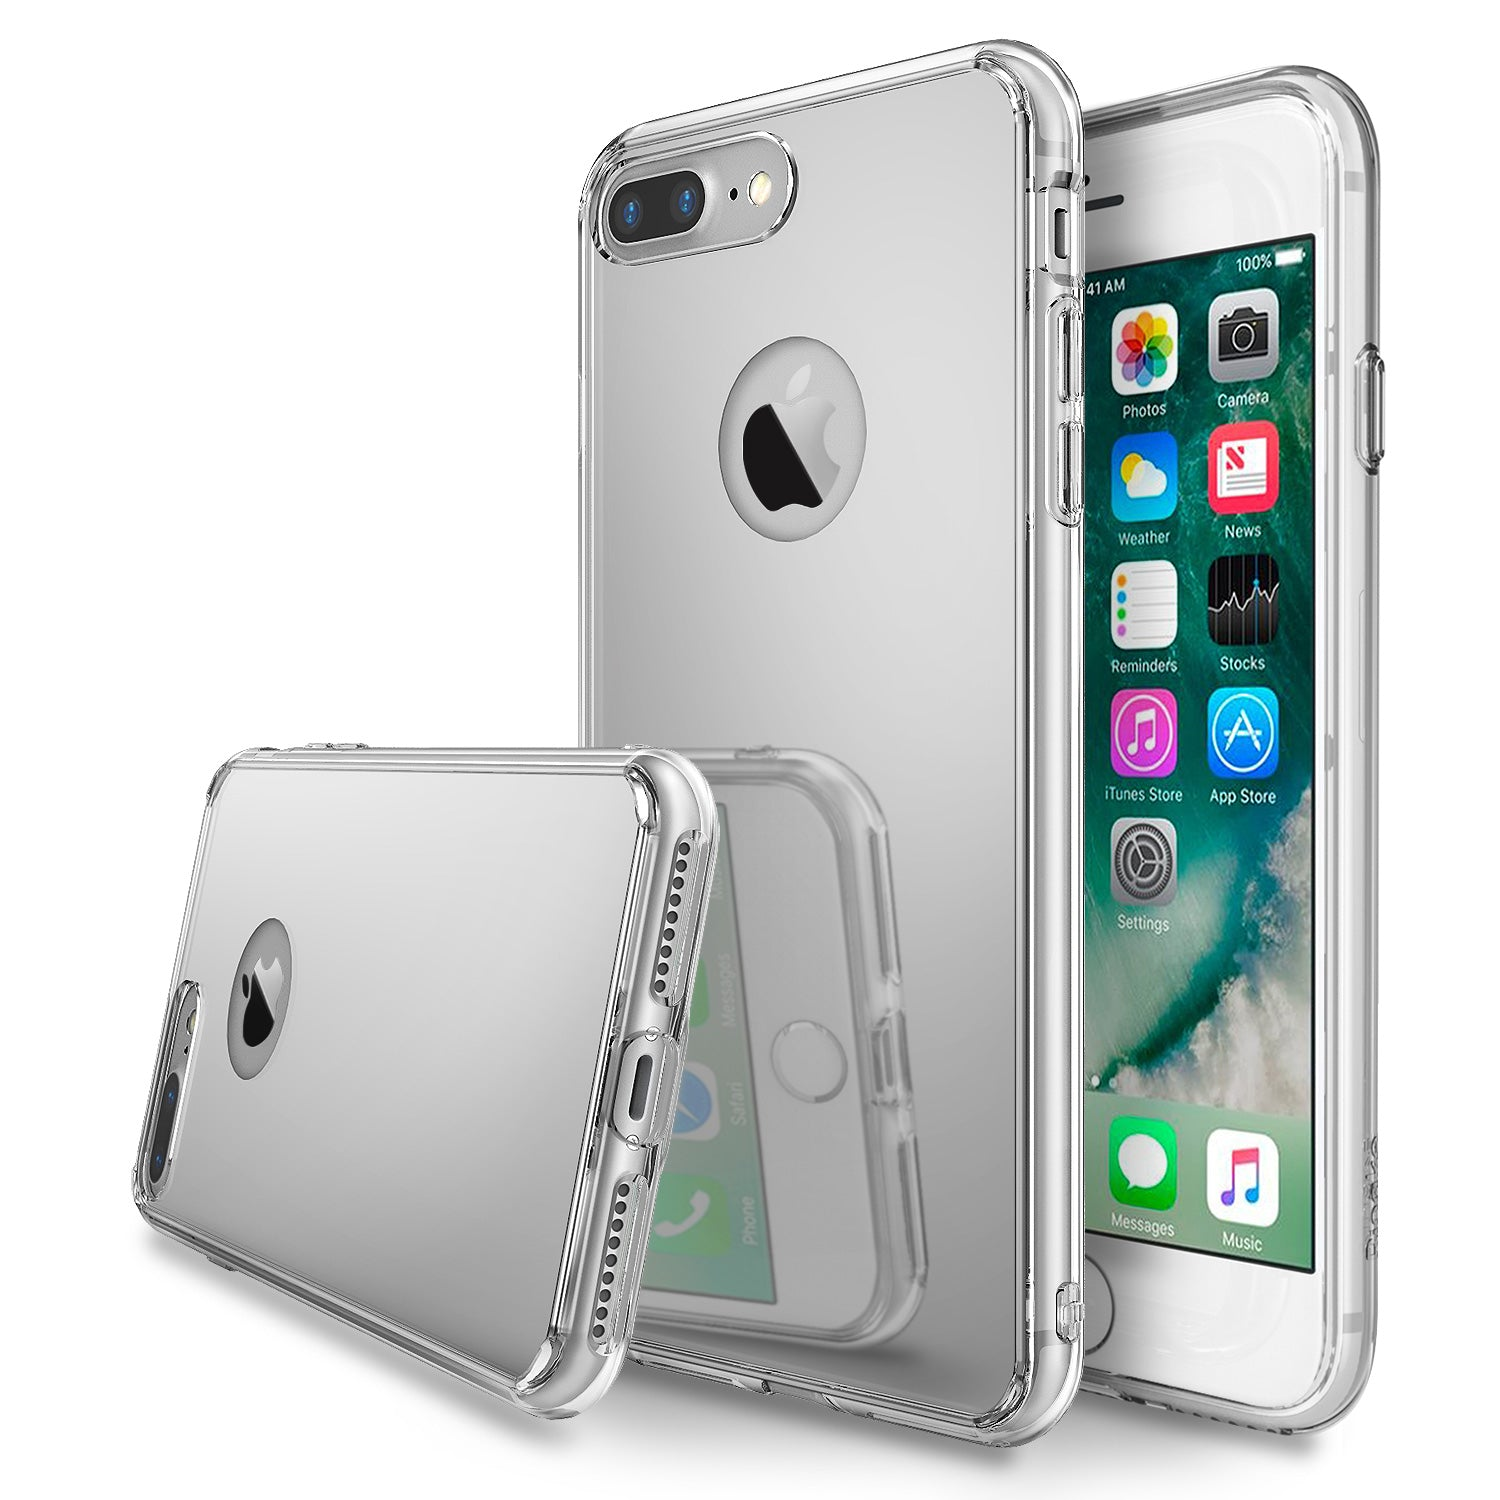 ringke mirror back case cover for iphone 7 plus 8 plus main silver